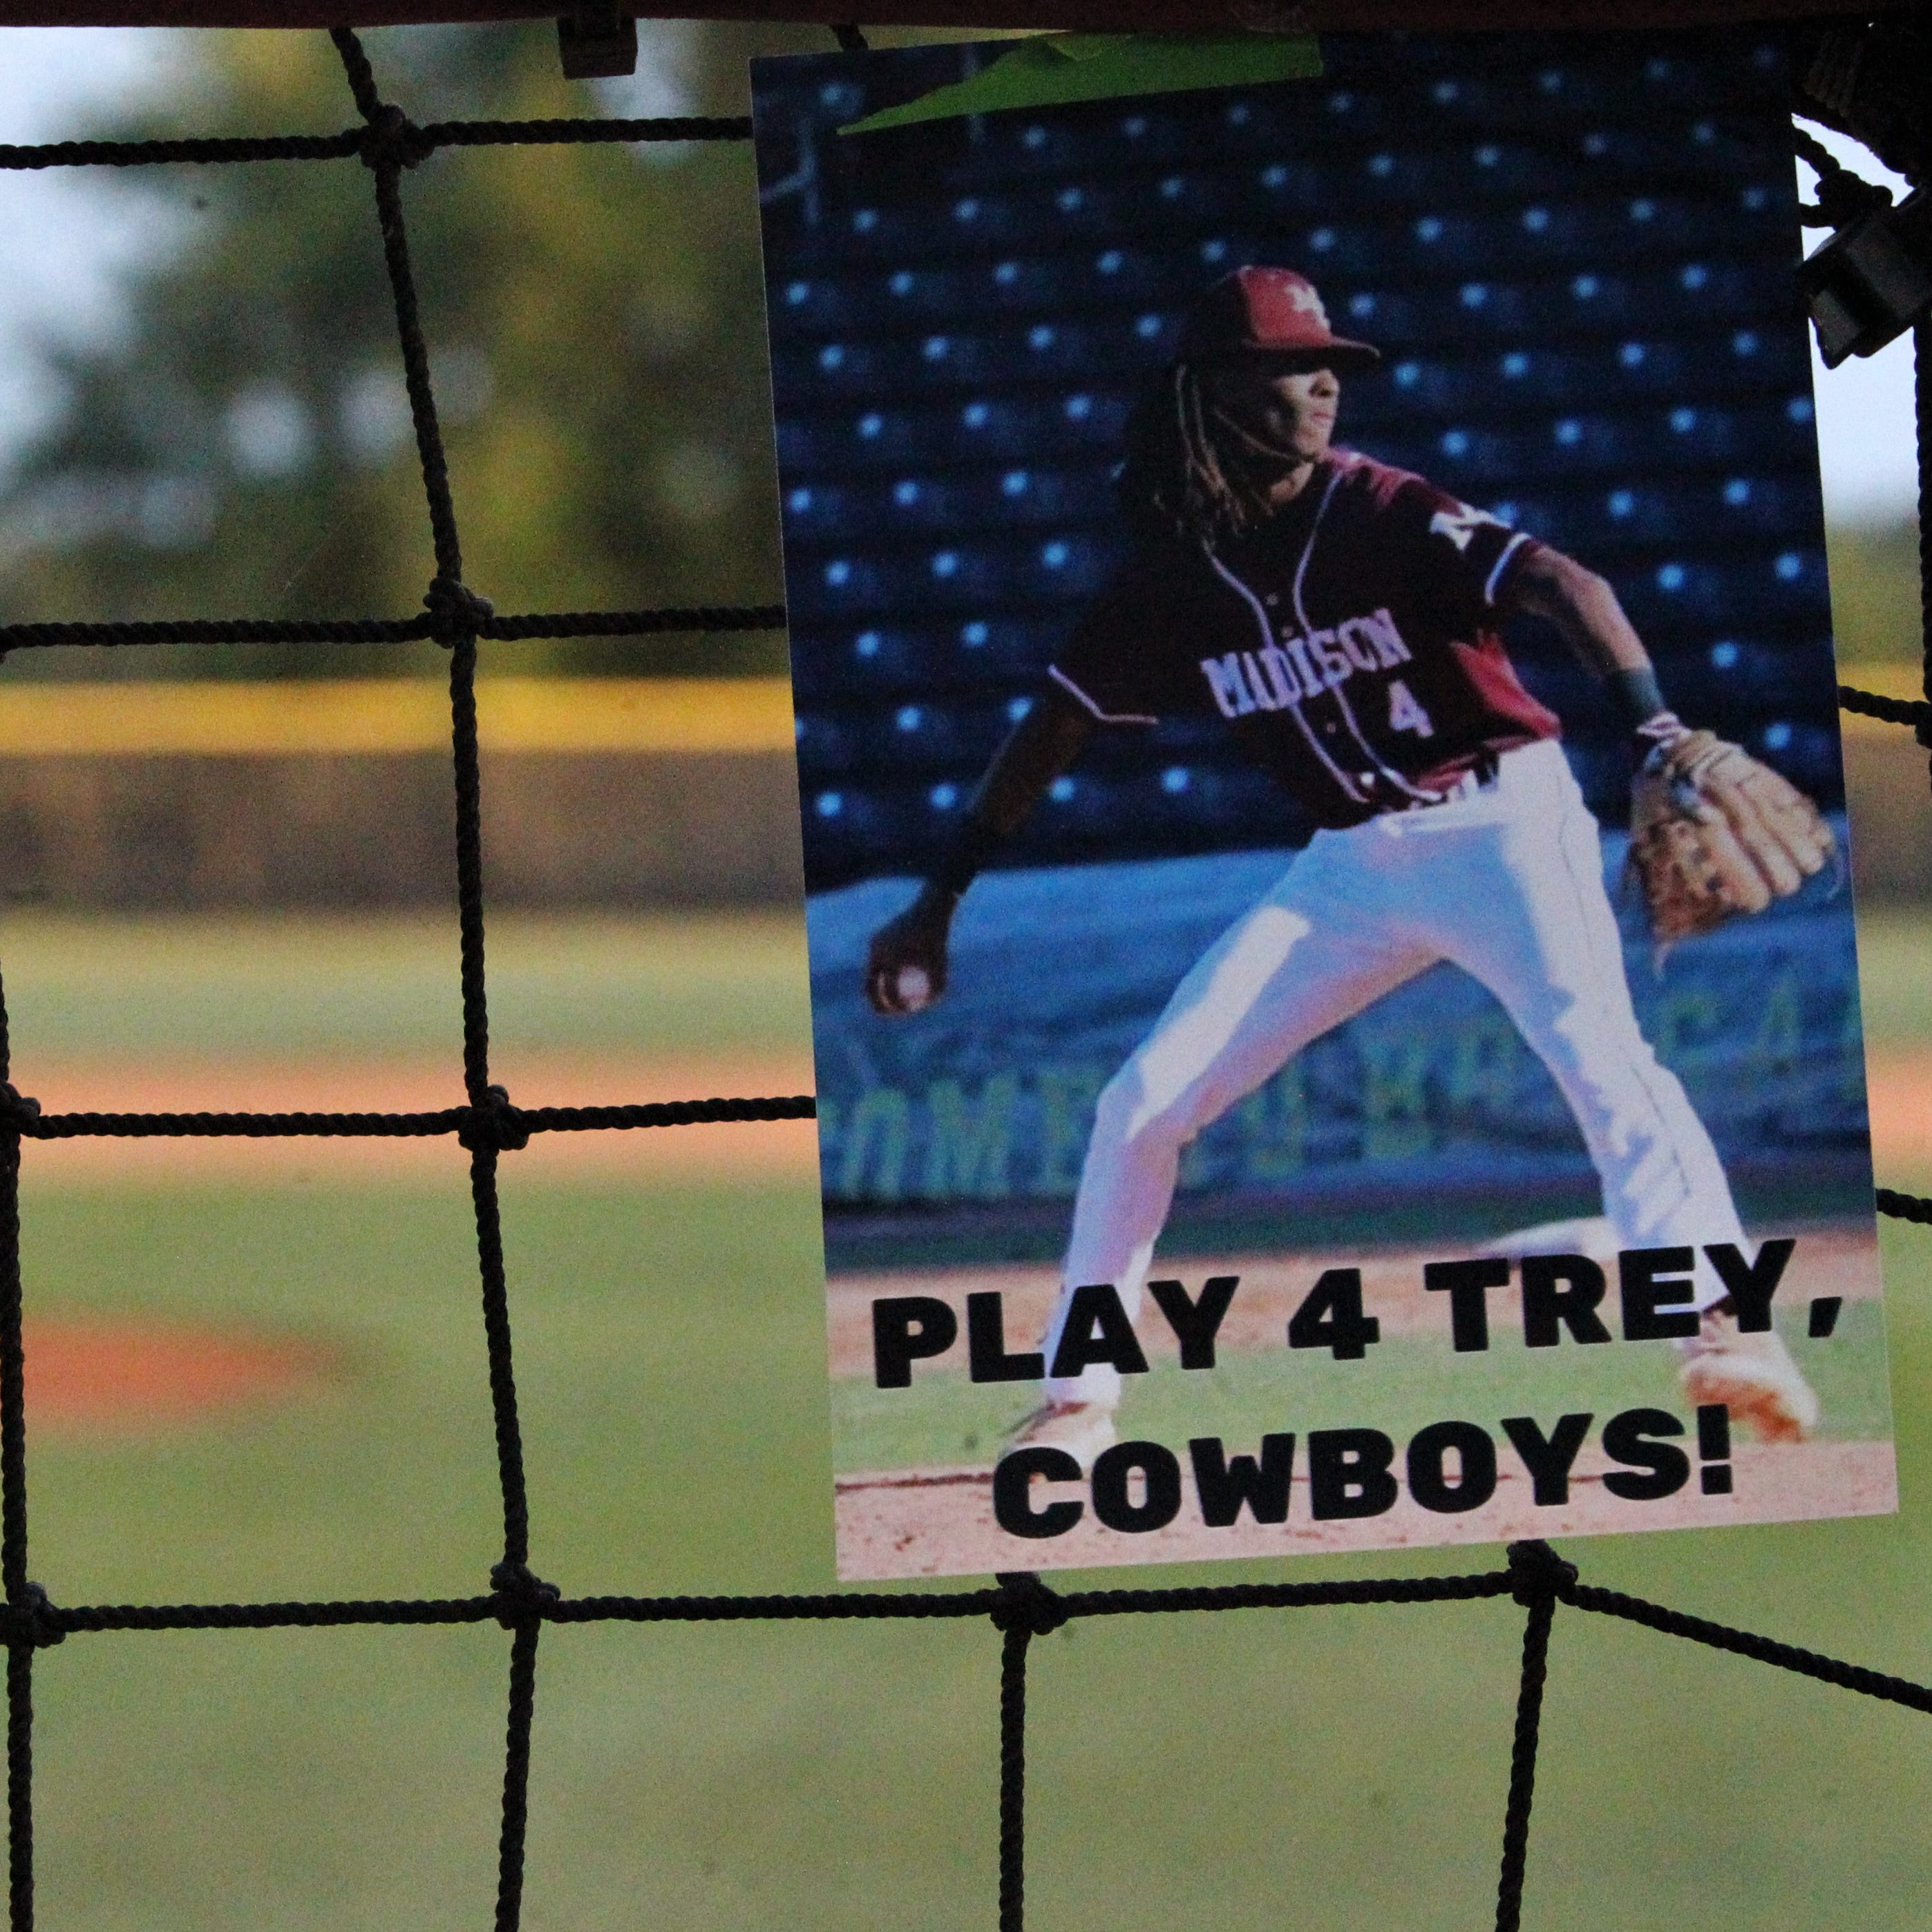 'Play 4 Trey': Madison County wins playoff game, grieves former player Mitchell's death